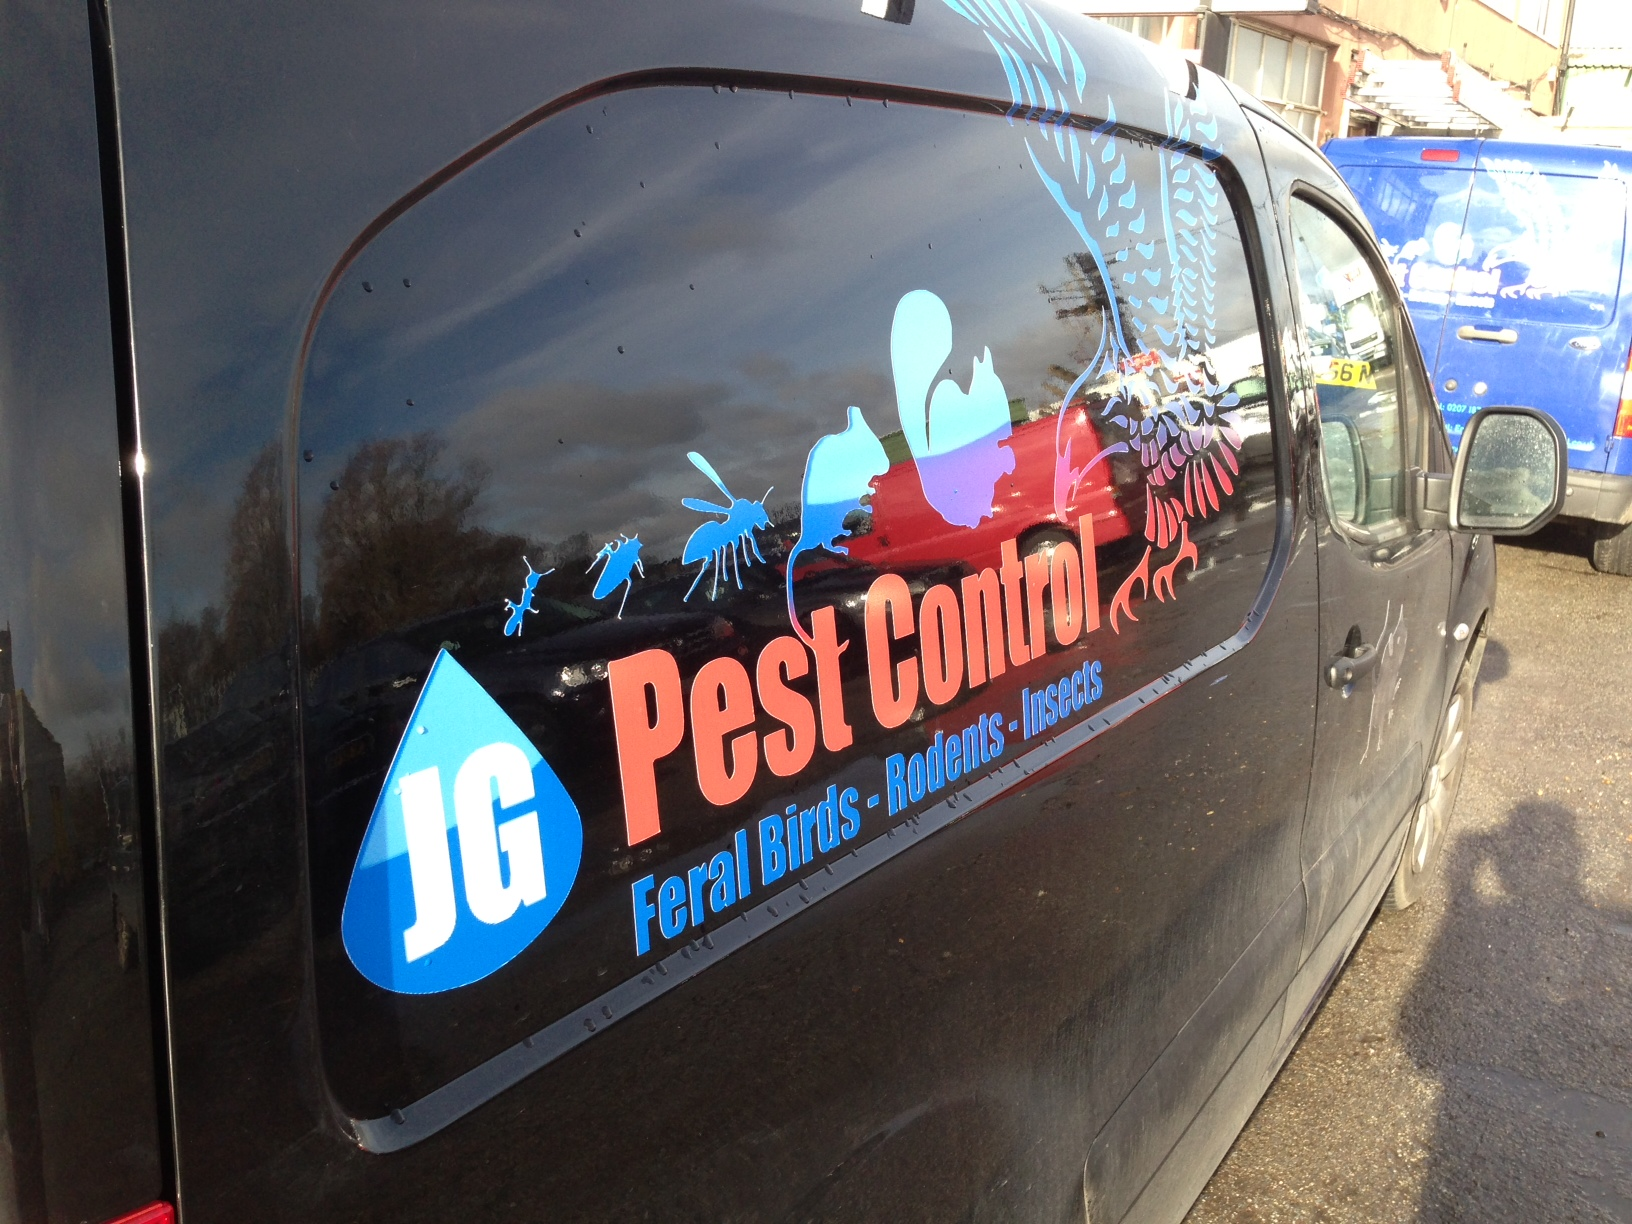 emergency pest control van